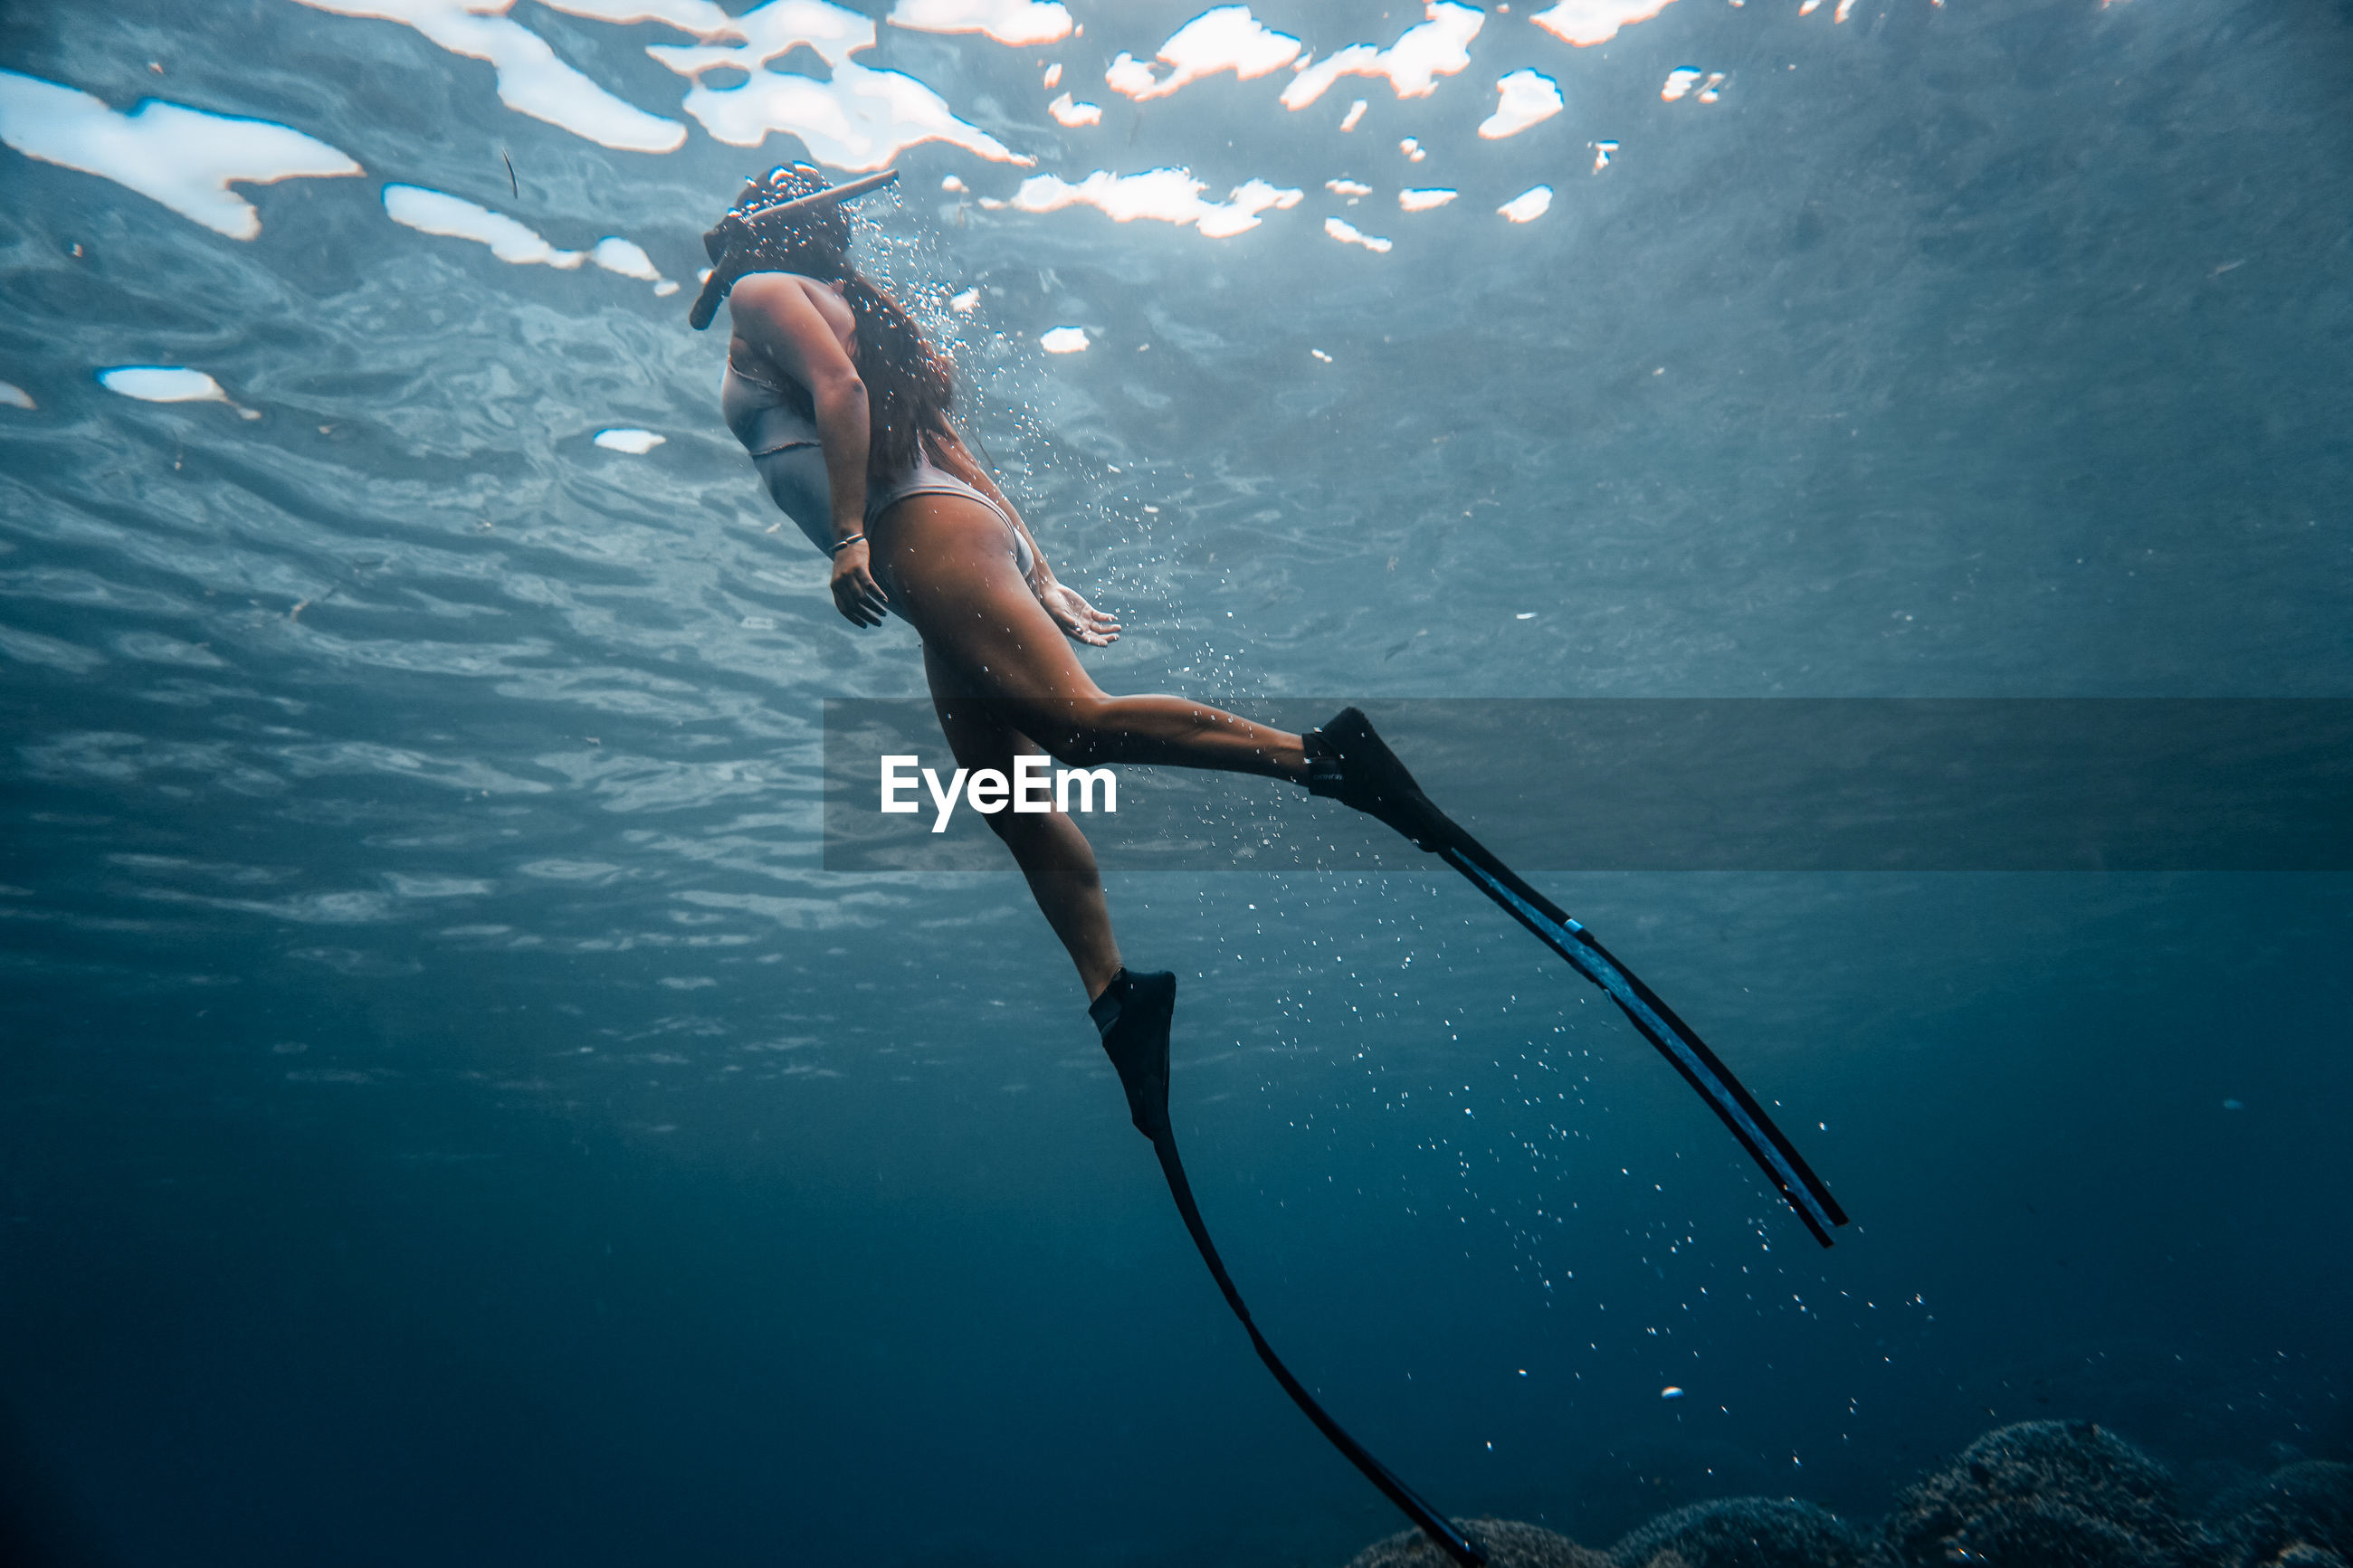 Low angle view of mid adult woman swimming in sea